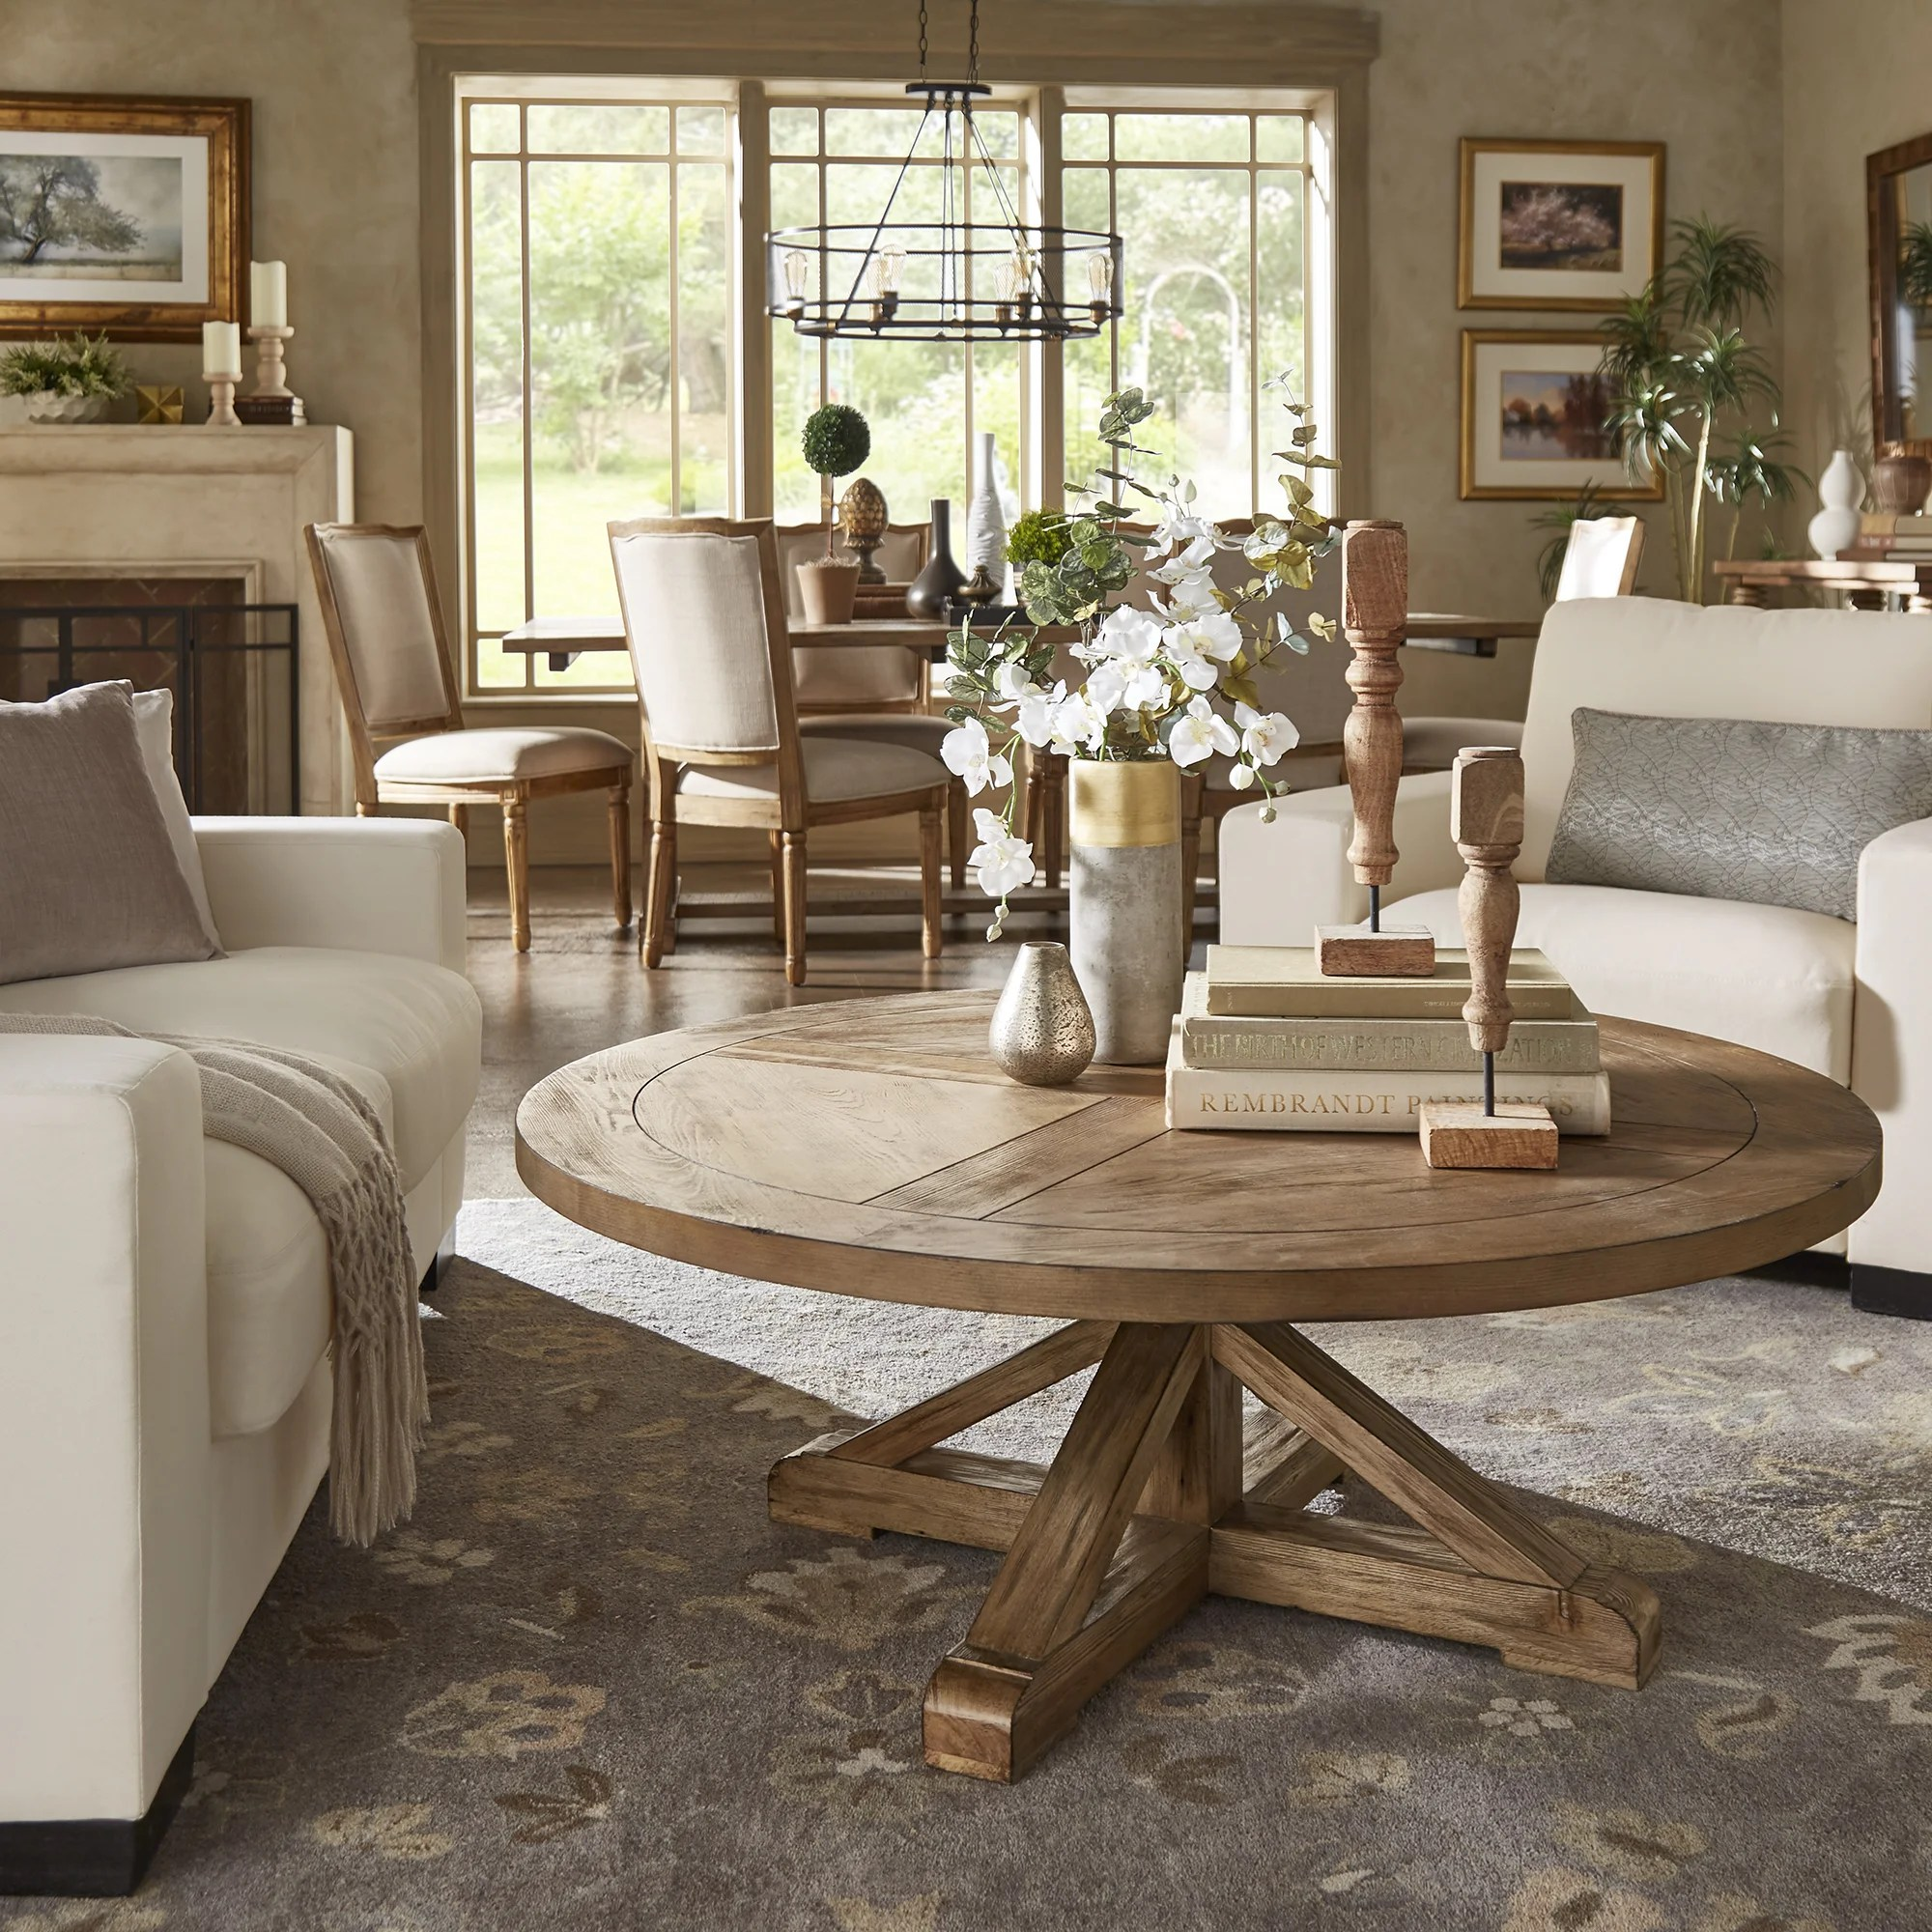 benchwright rustic x base round pine wood coffee table by inspire q artisan